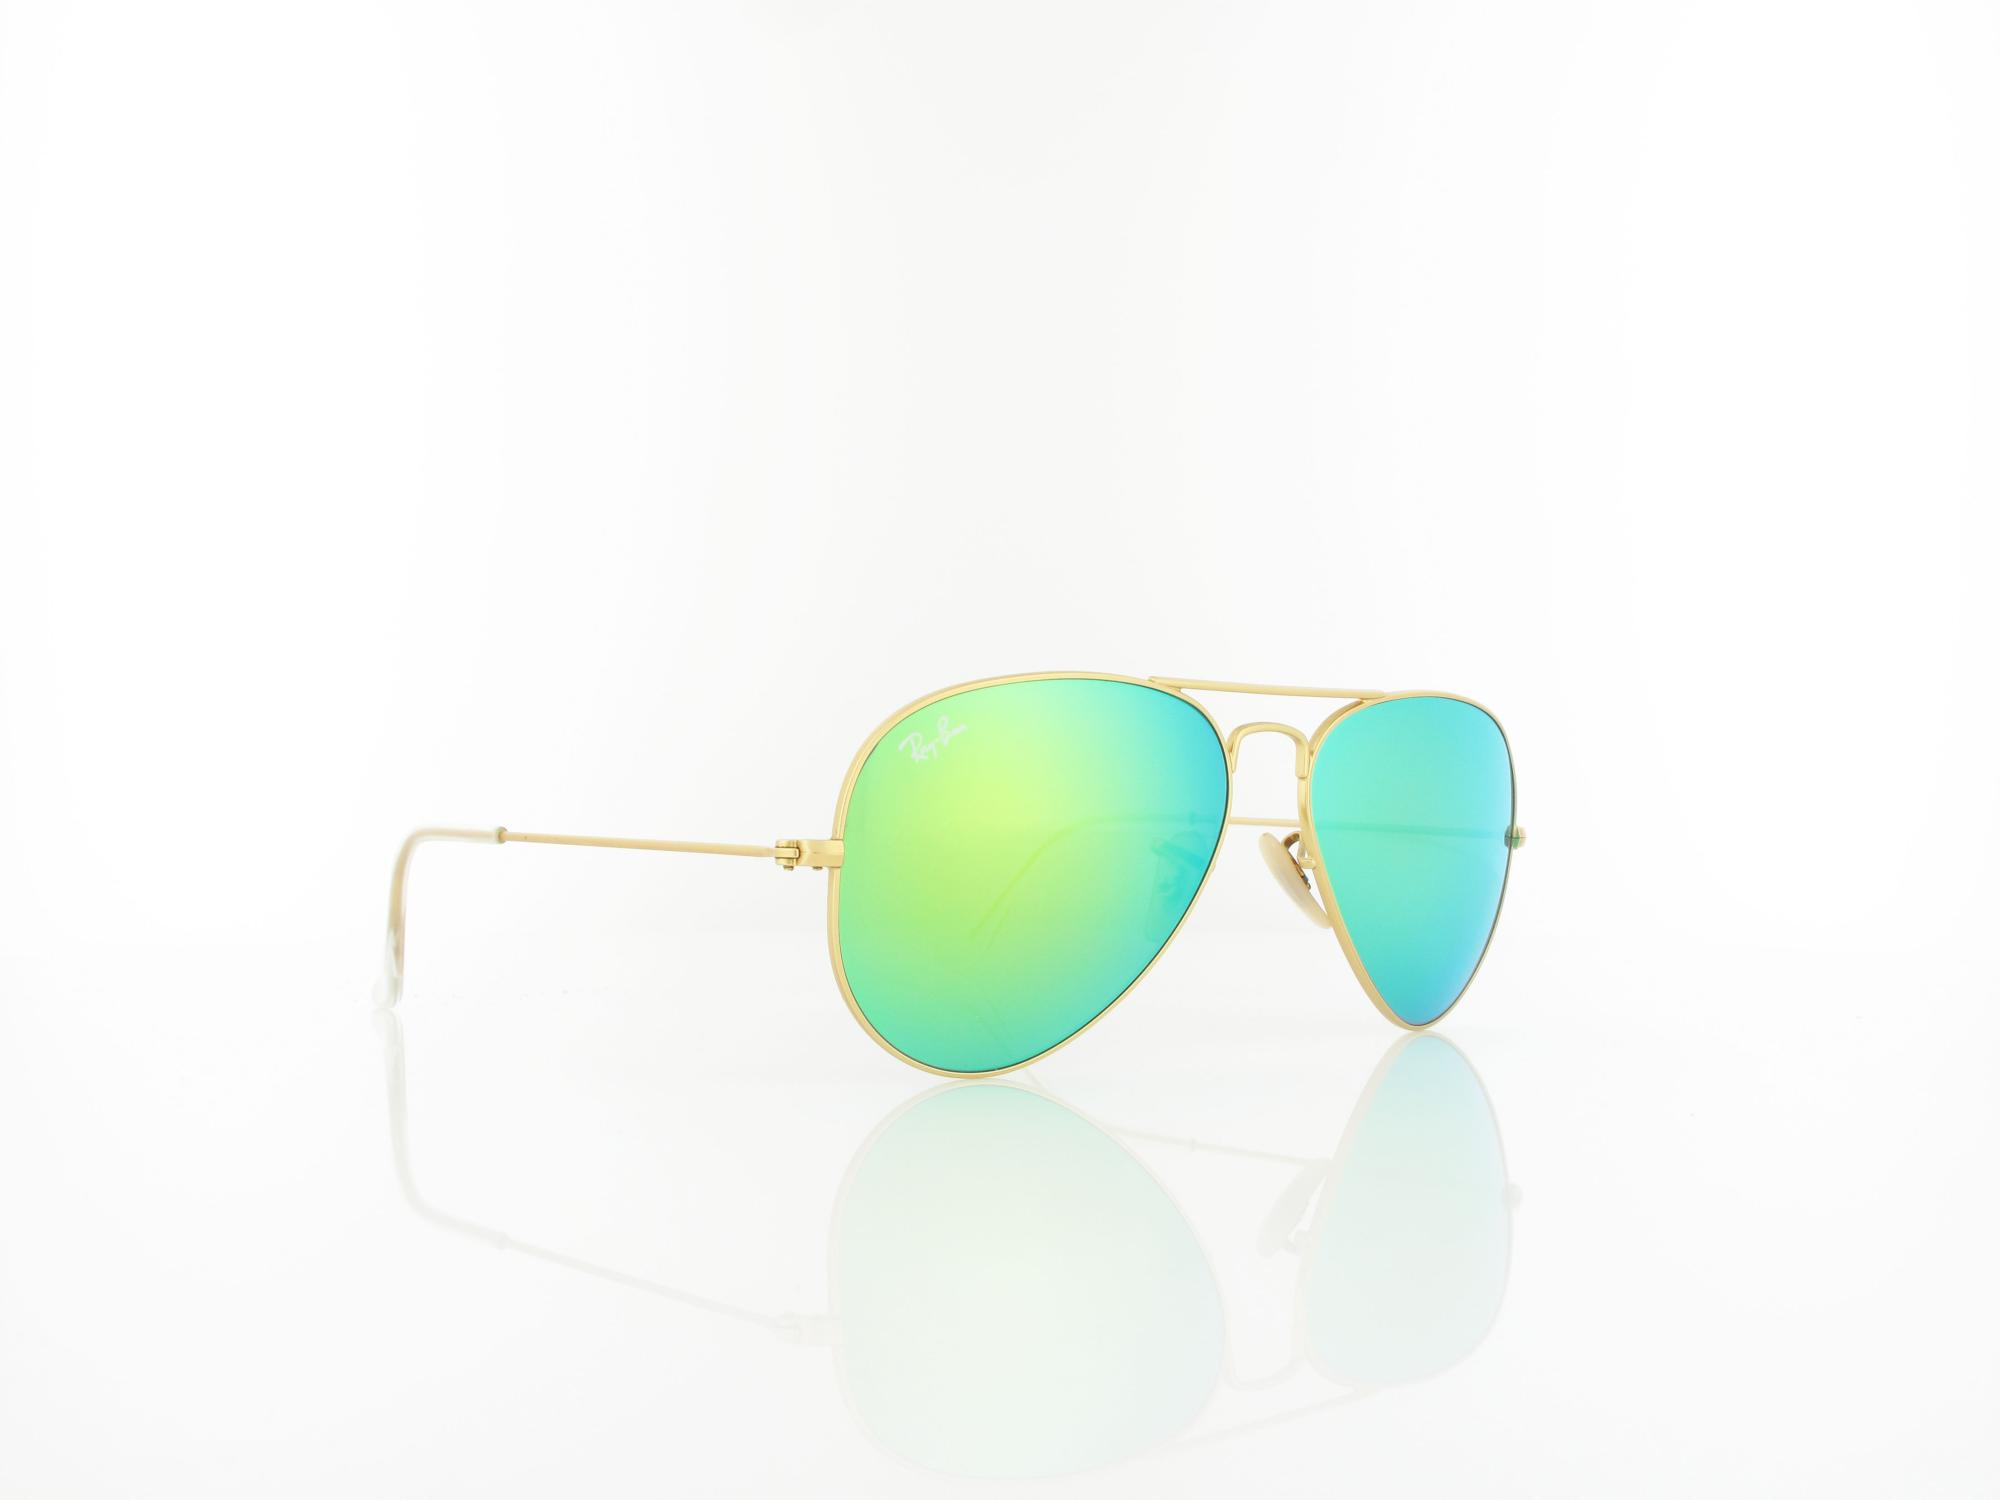 Ray Ban | Aviator Large Metal RB3025 112/19 55 | matte gold / green mirror